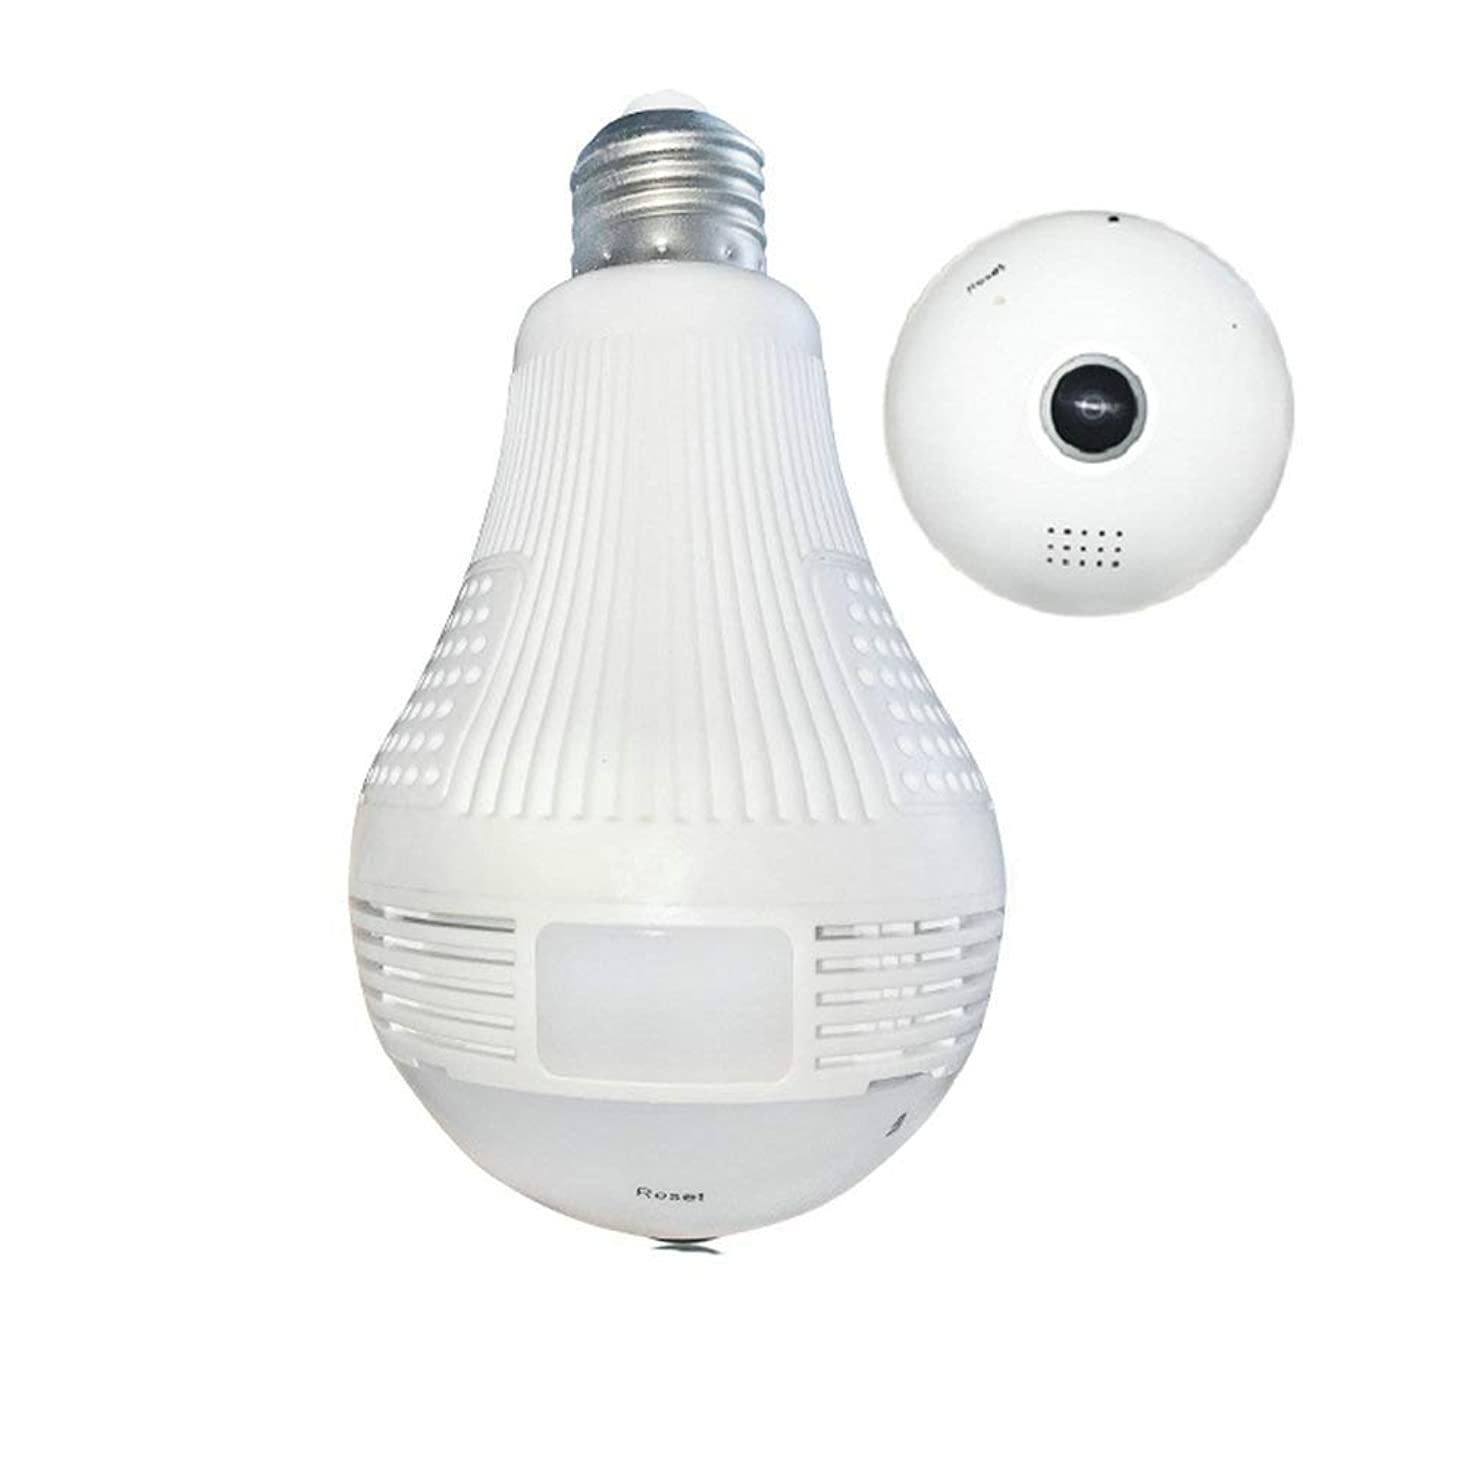 WiFi Bulb Camera, Asunflower LED Light Security Camera 360° Panoramic Fisheye1080P Cam 2 Way Audio Wireless Network Camera Home & Outdoor Remote Security Surveillance (1080P)